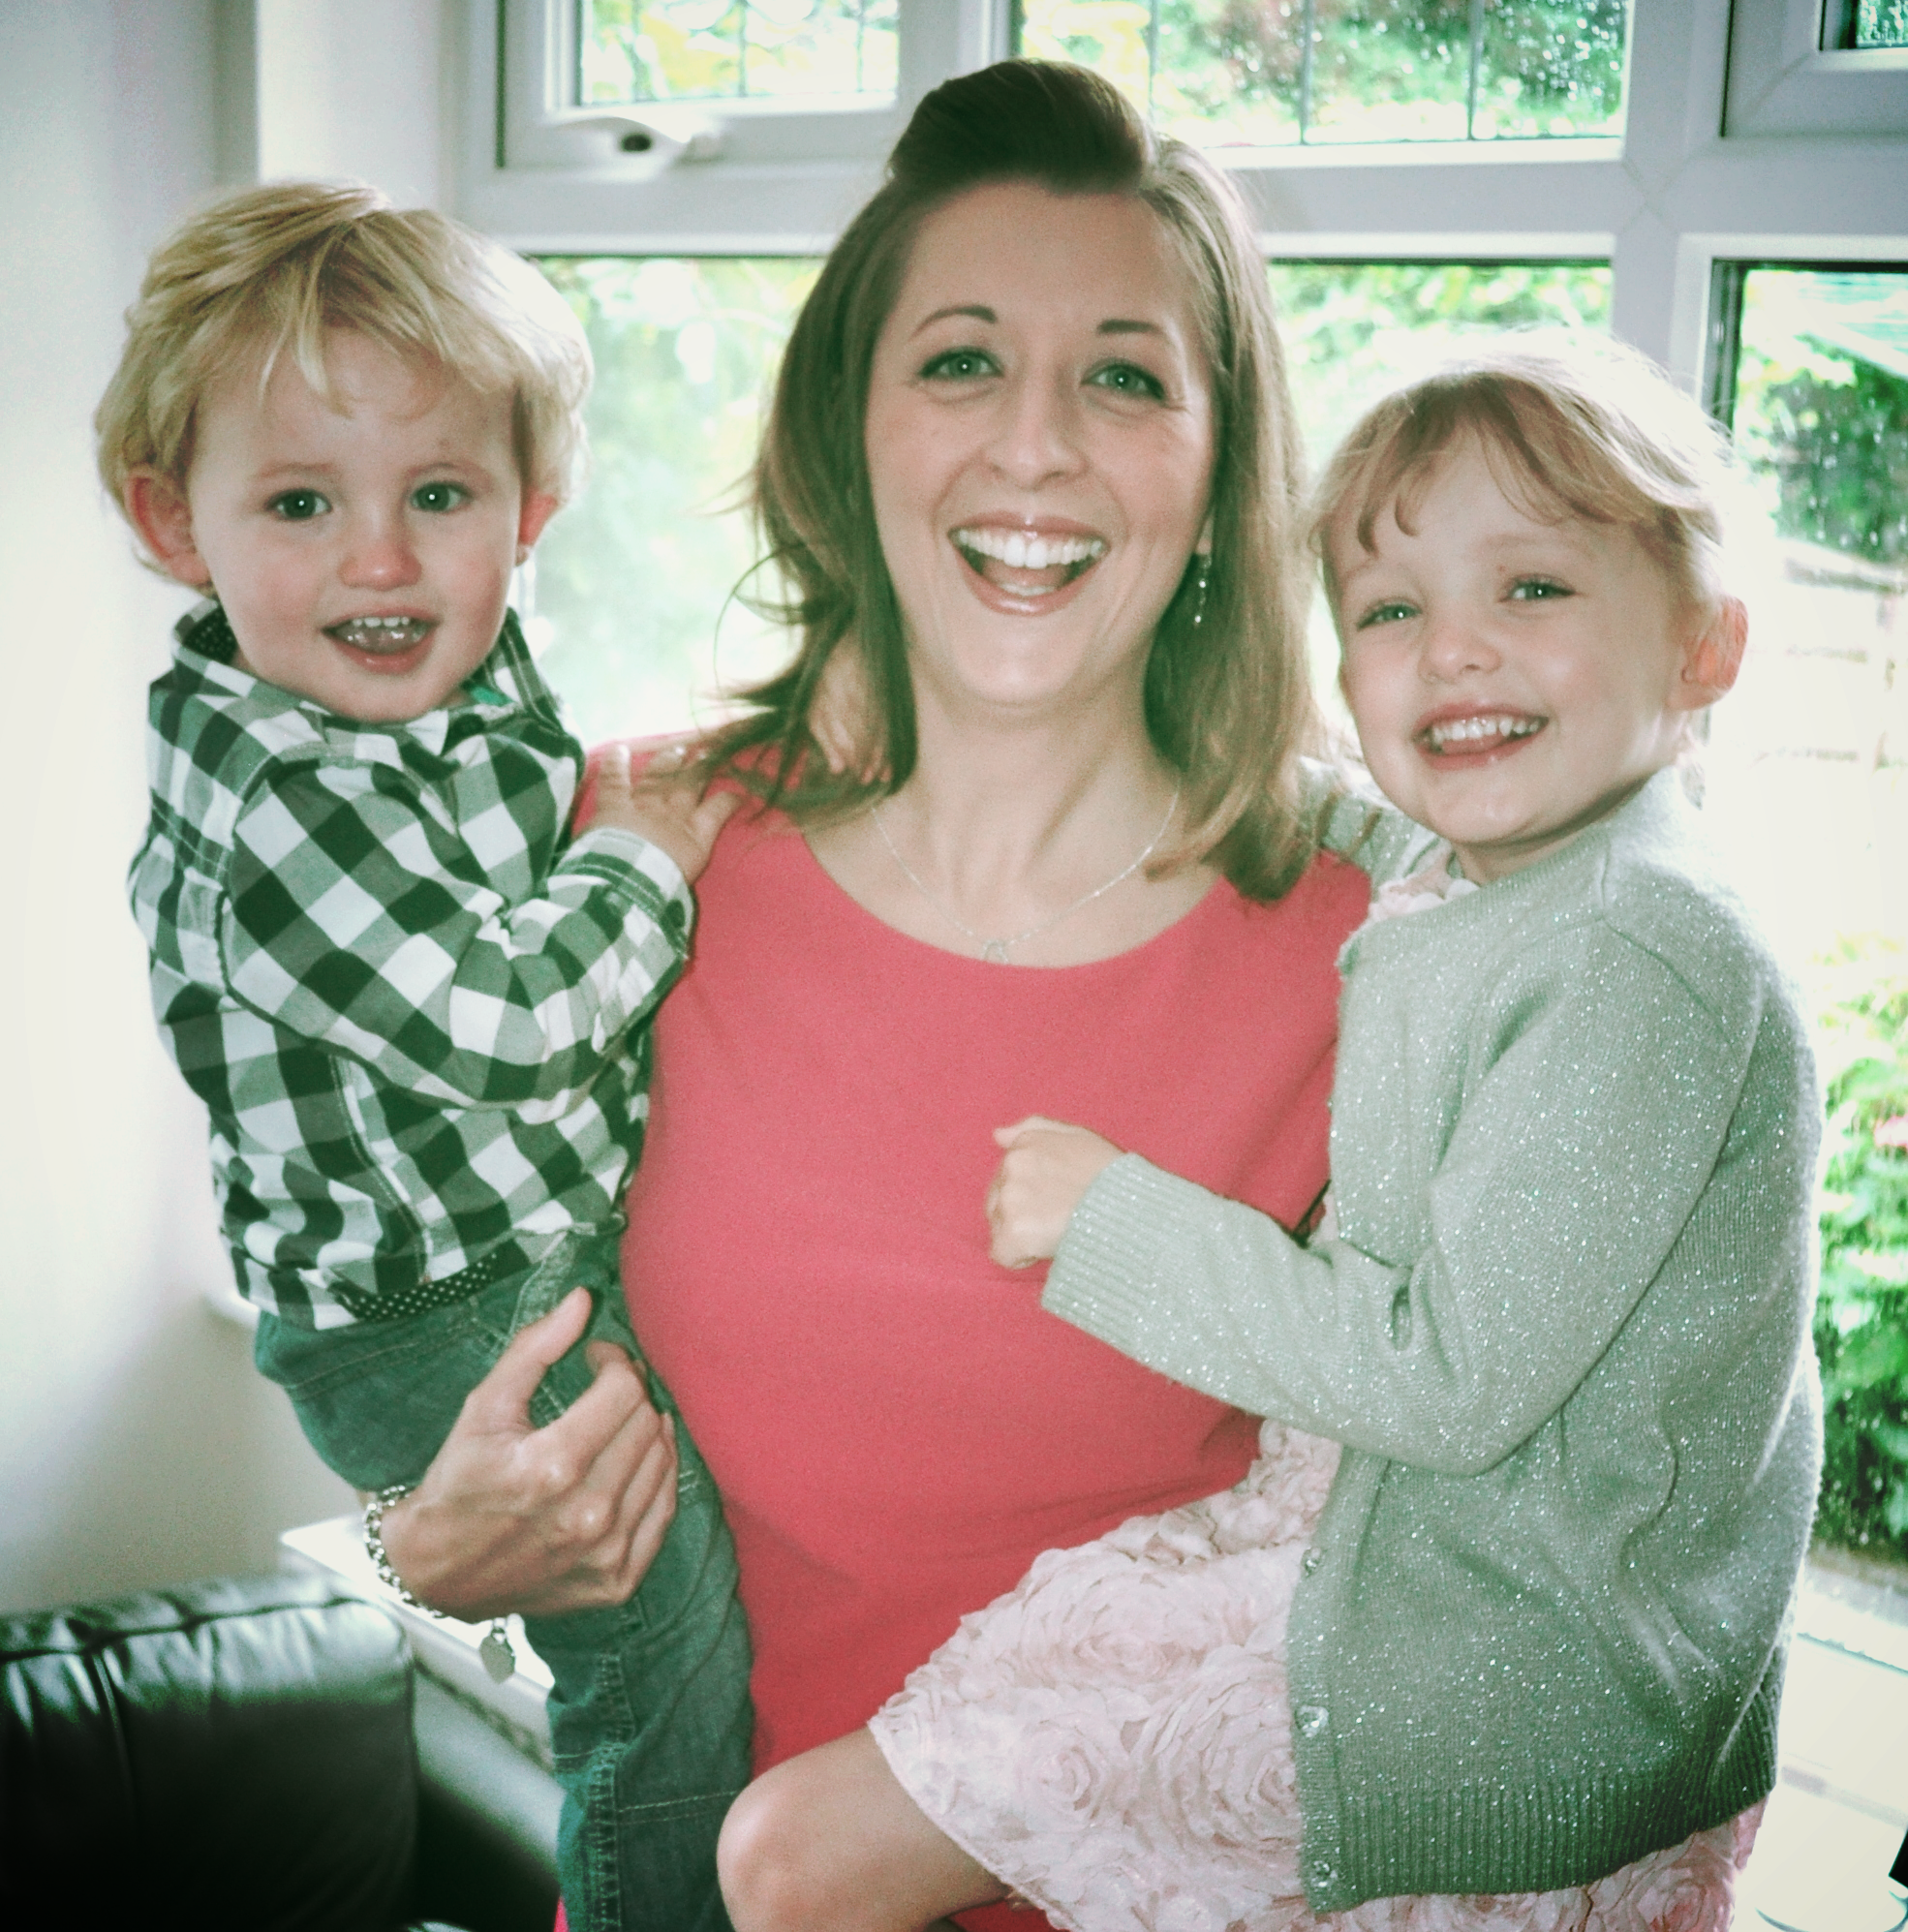 Jennifer with her two children, Chloe and Tom